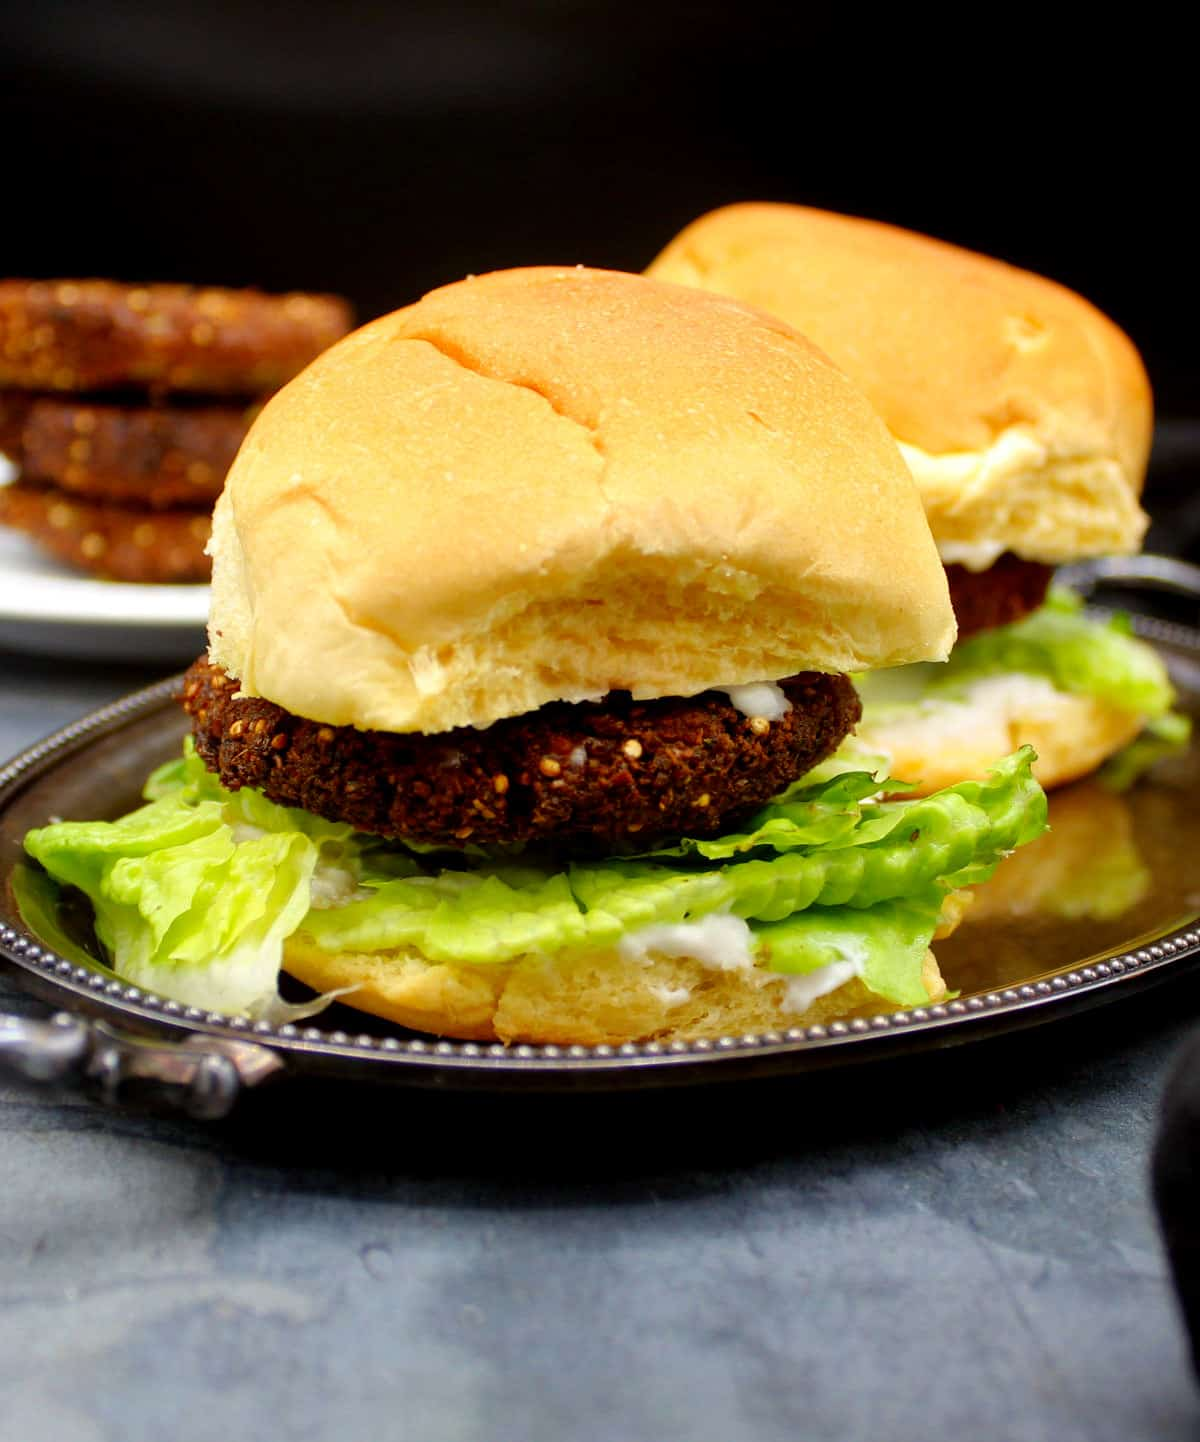 Front closeup photo of a falafel burger with lettuce, mayo and burger patty.